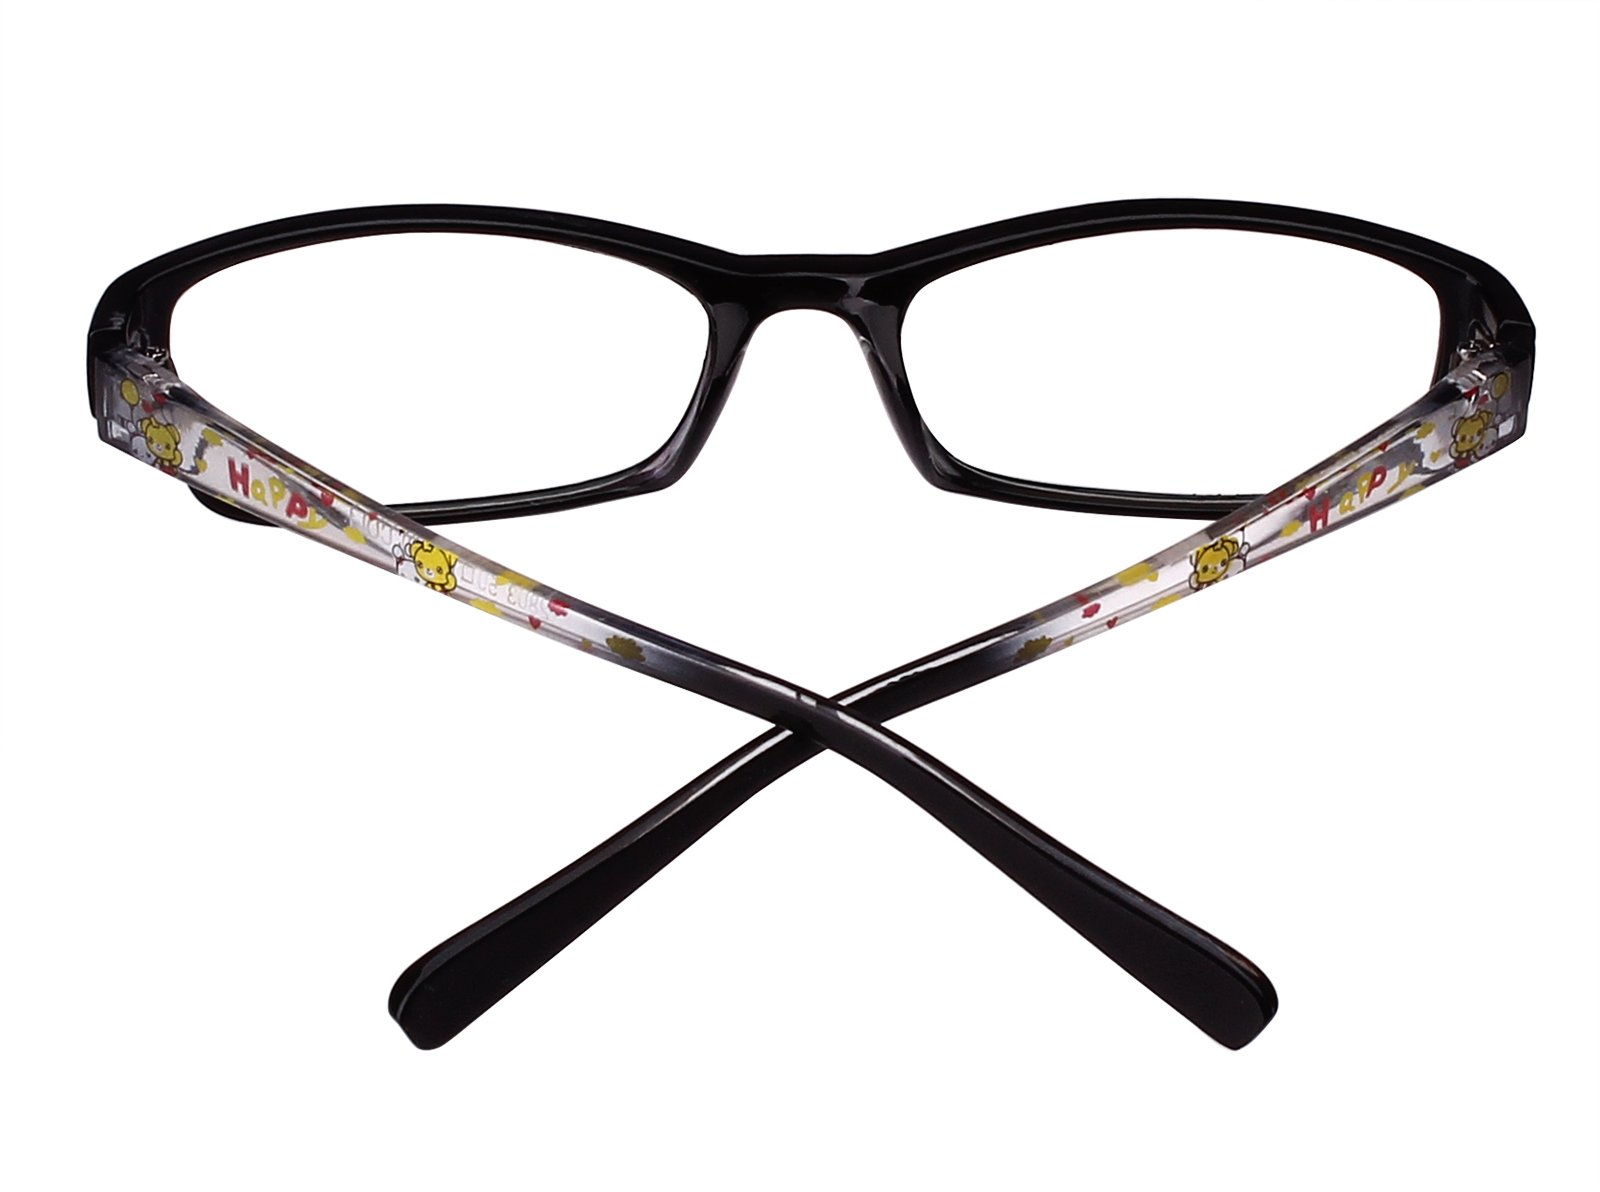 a2b876af83c Agstum Kids Classic Rectangle Optical Frame Girls Boys Glasses Clear Lens  (Black   Clear)   Departments   Clothing